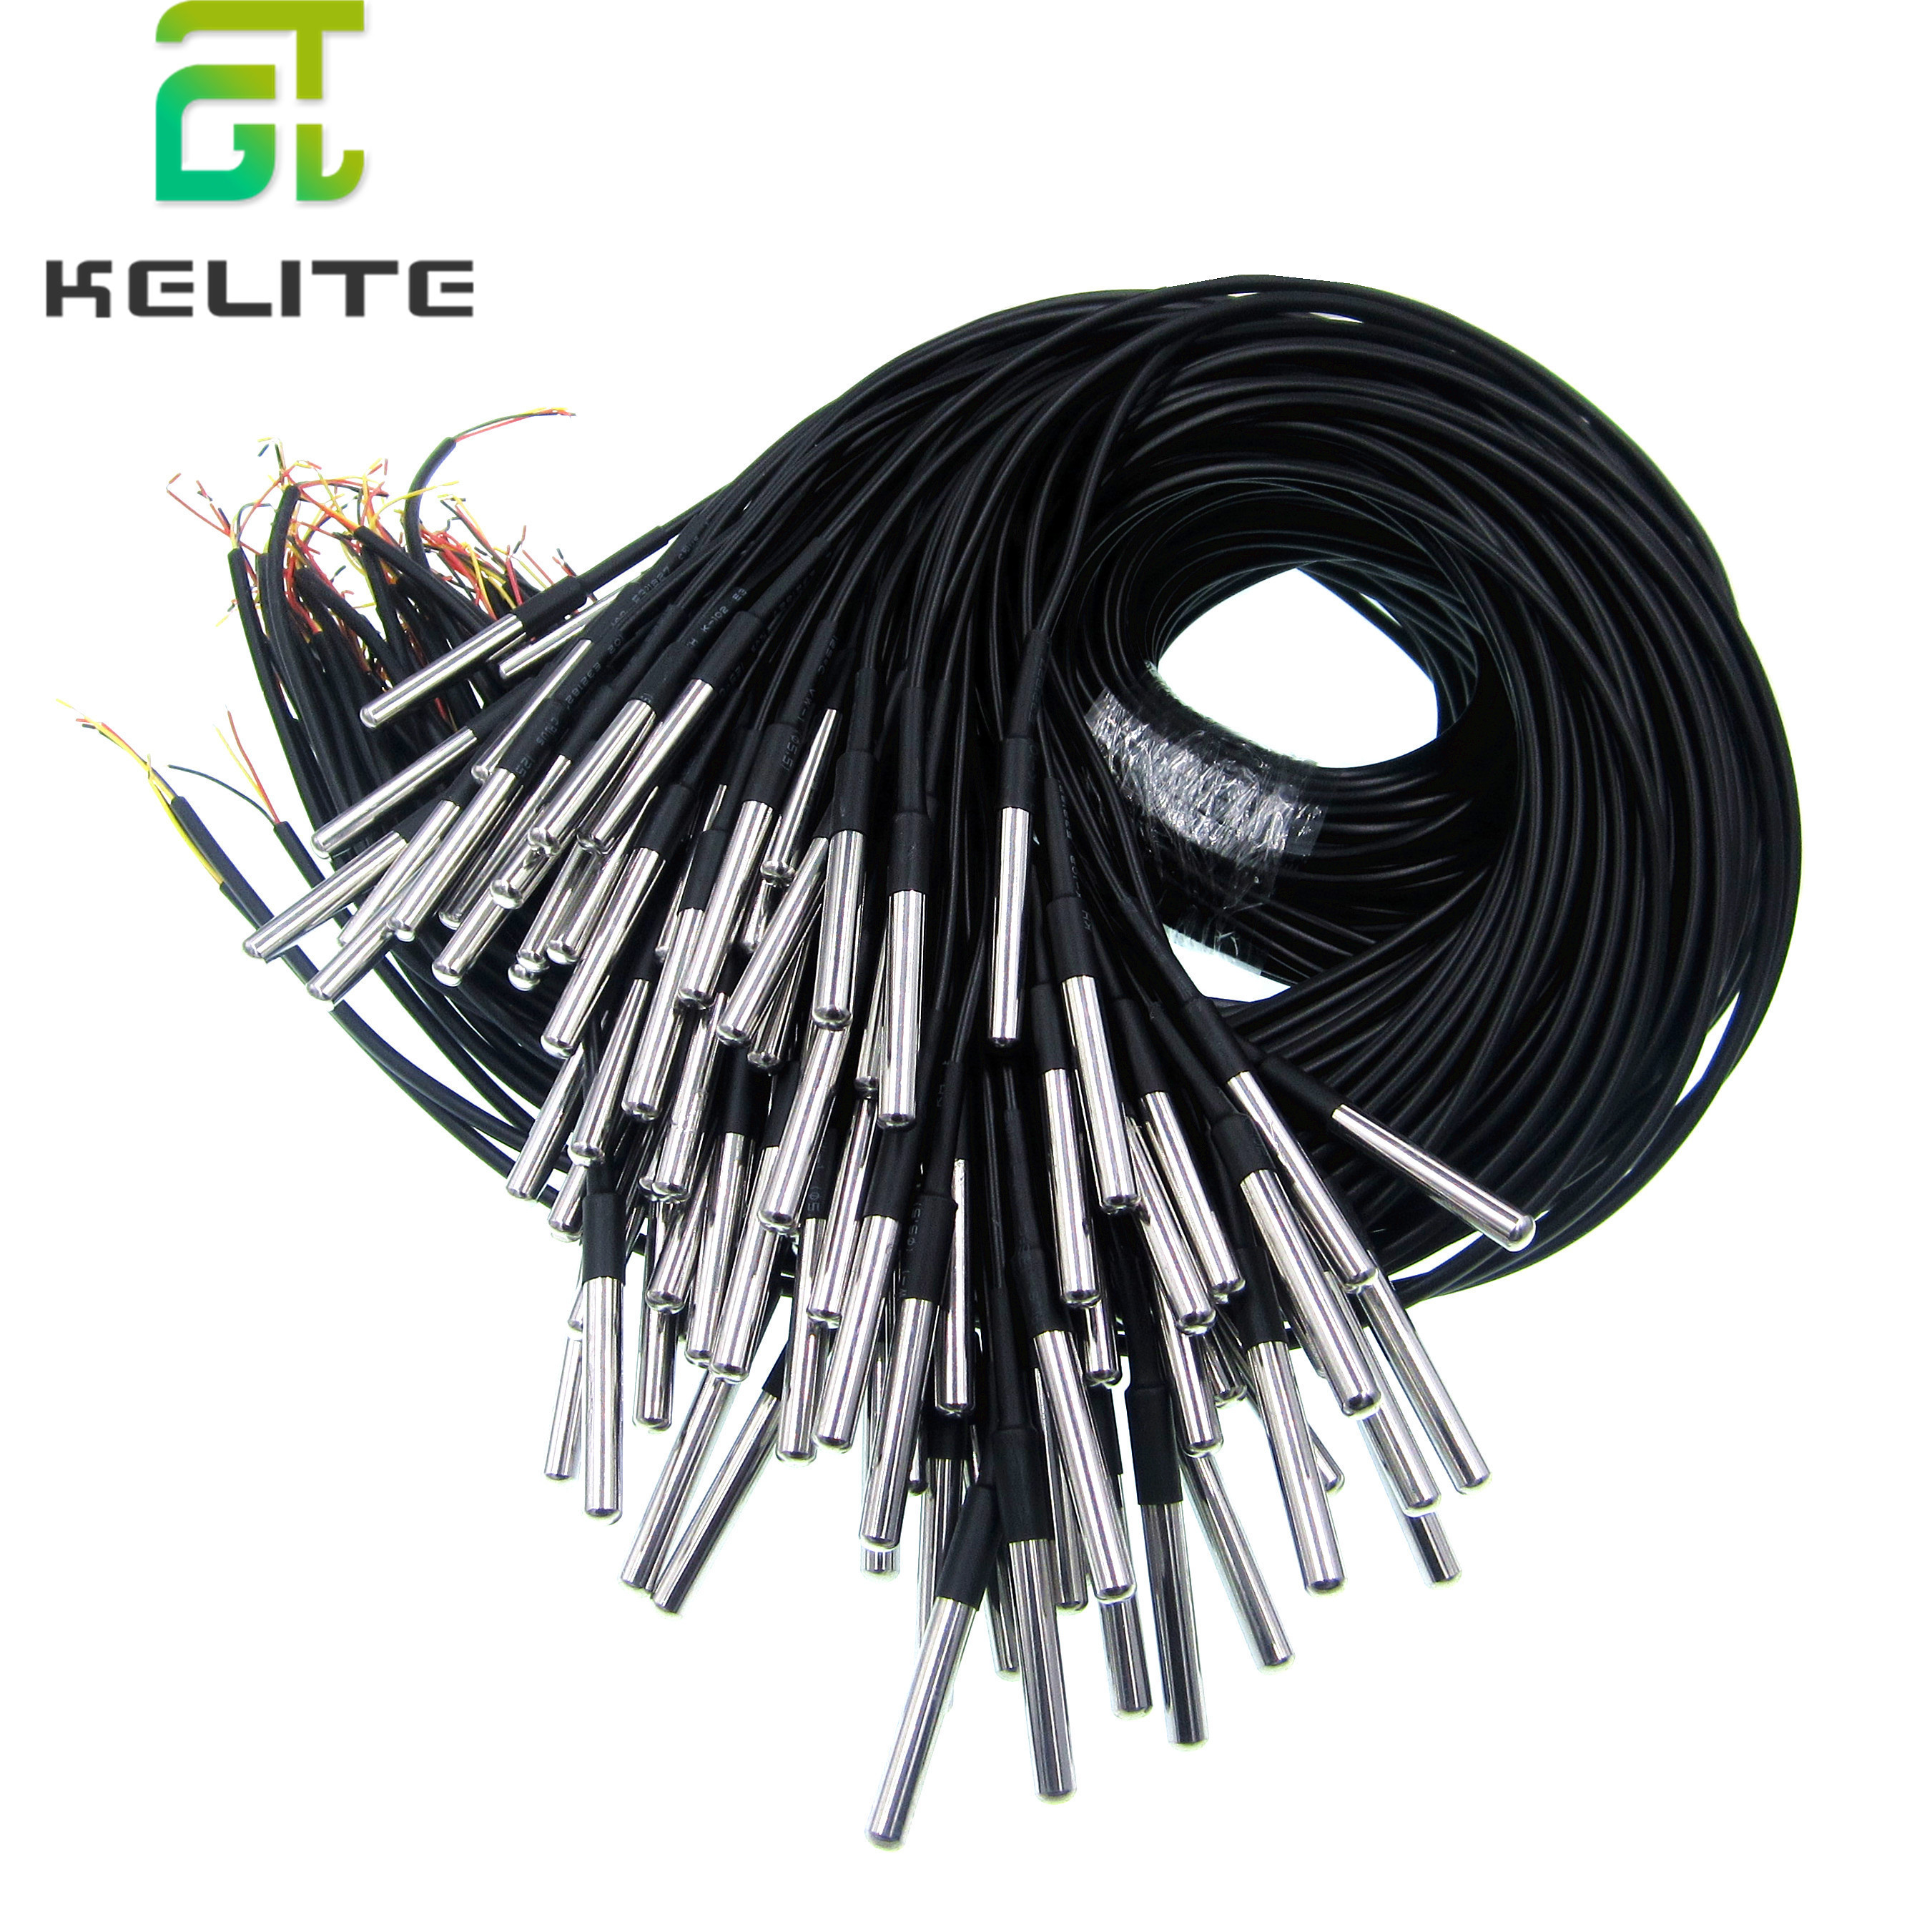 10PCS Waterproof 18B20 Temperature Probe Temperature Sensor Stainless Steel Package 1 Meter/2meter/3meters Wire (DS18B20)